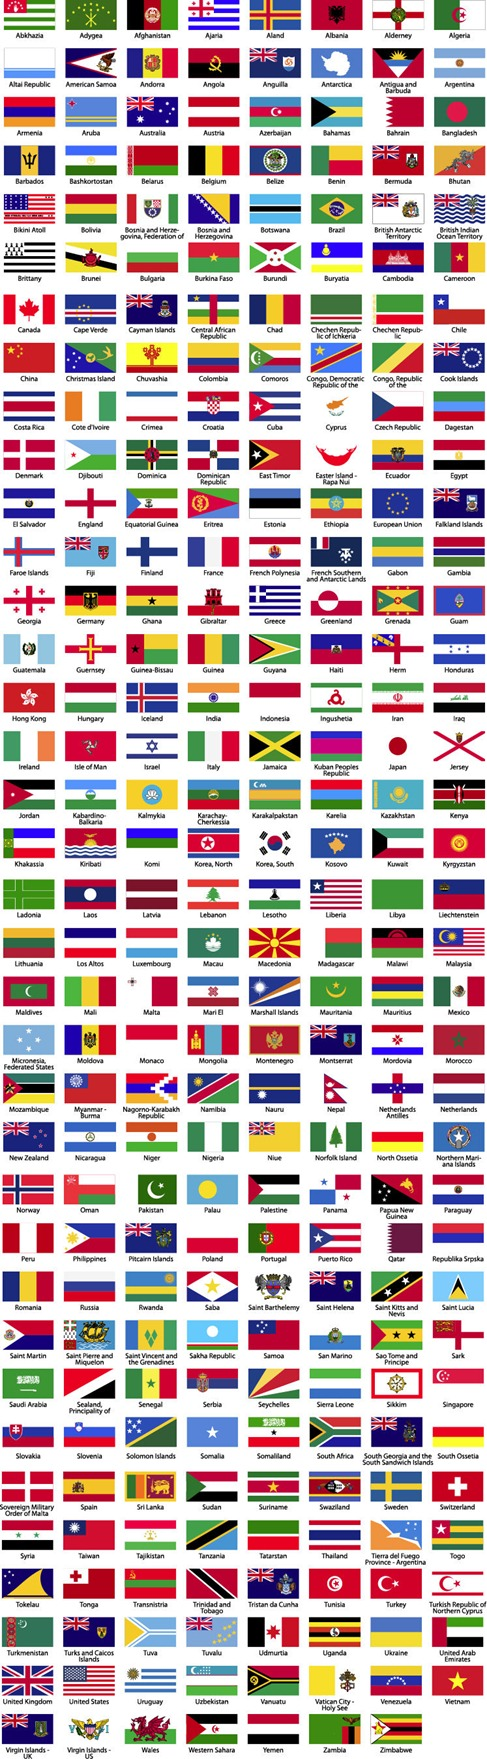 alphabetical order flags of the world flags of the world in alphabetical order country flags in alphabetical order flags of the world alphabetical alphabetical order country flags with names country flags alphabetical all country flags in alphabetical order alphabetical order world flags country name alphabetical order flags of the world country flags of the world in alphabetical order countries and flags in alphabetical order list of country flags alphabetical countries and their flags in alphabetical order countries flags alphabetical order